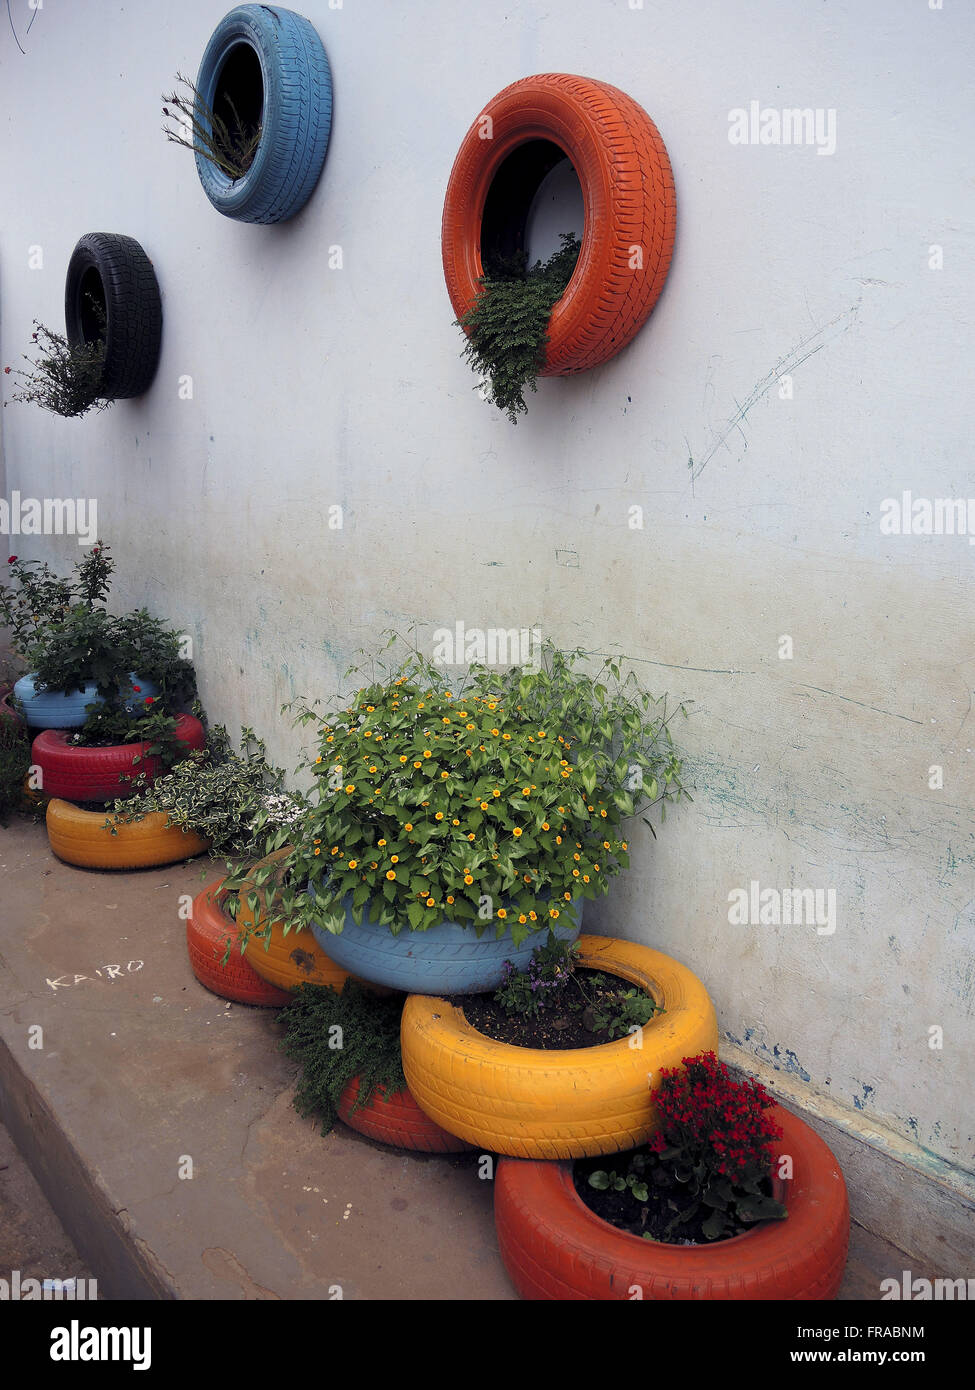 Garden made of recyclable material in public schools - Stock Image